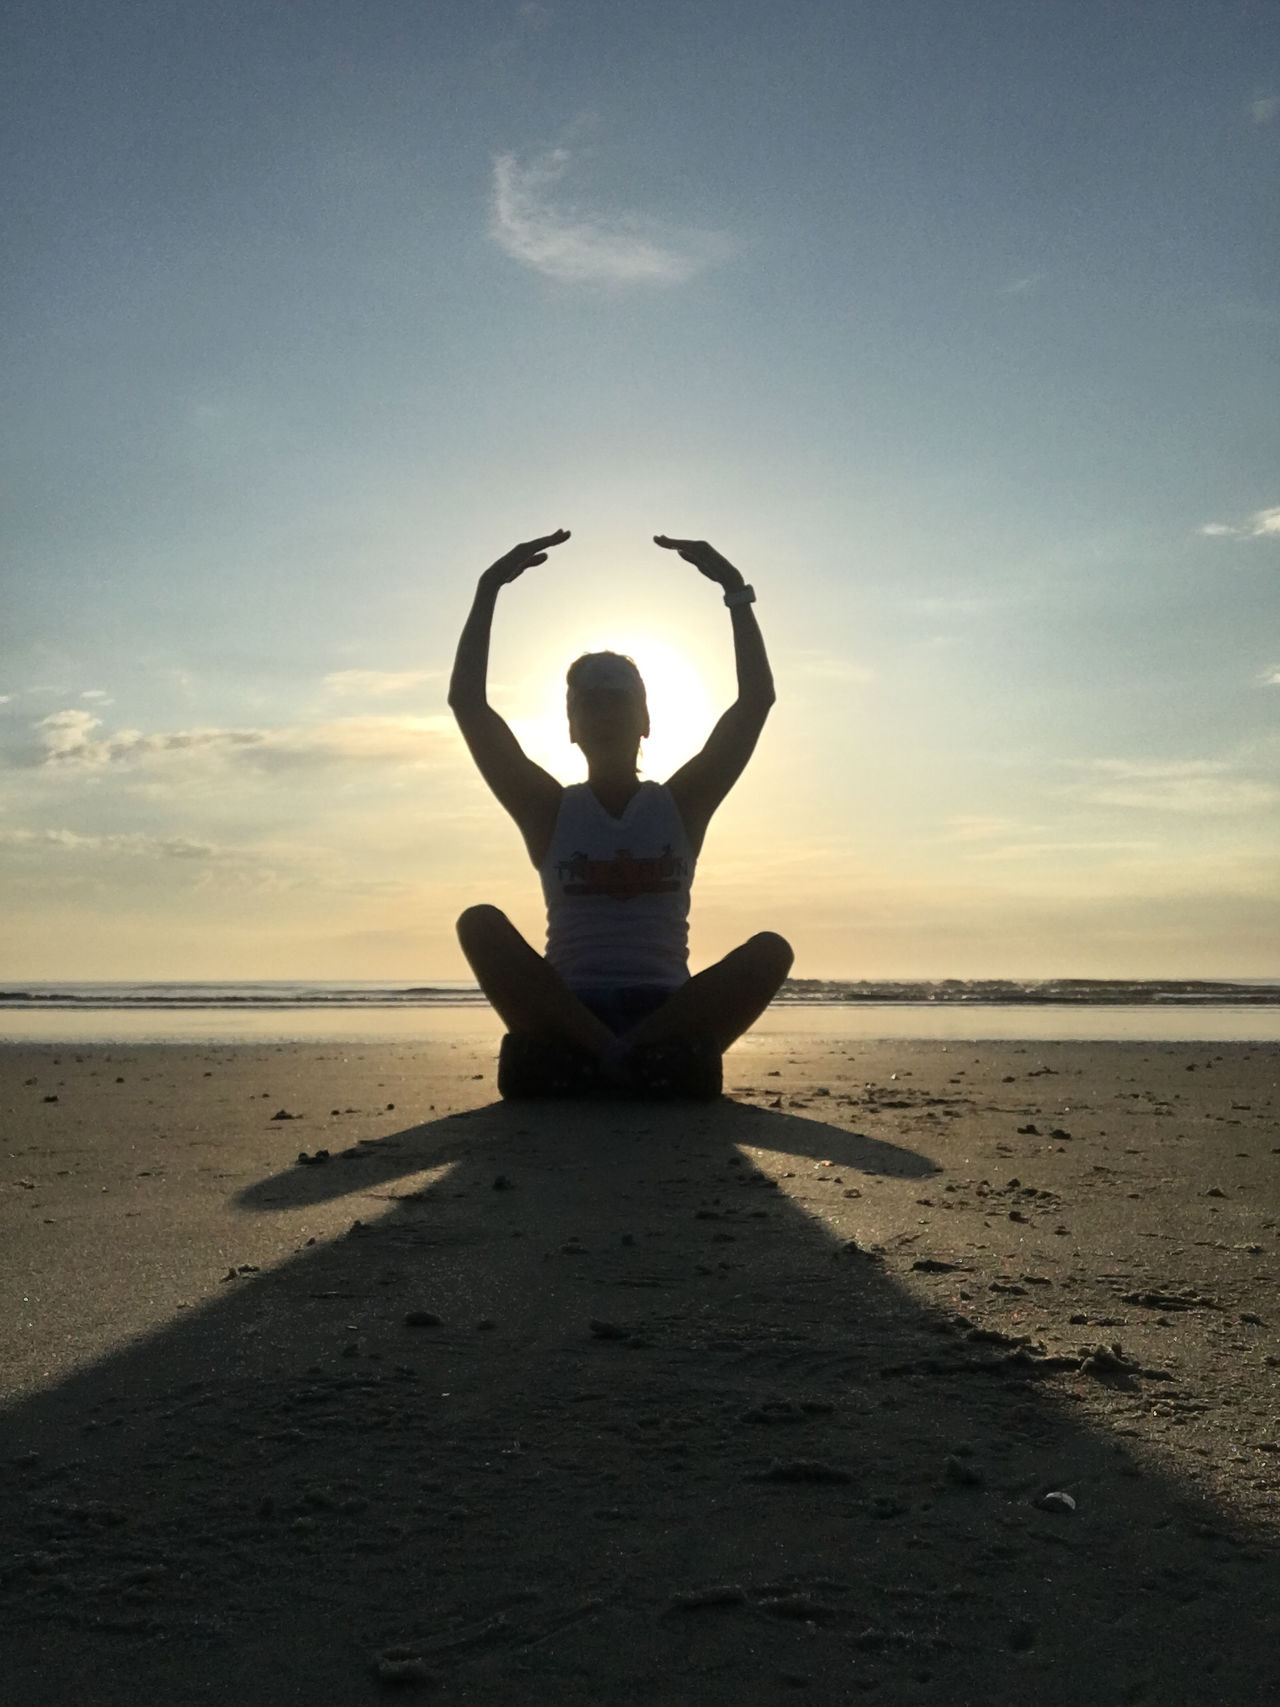 Yoga on the beach Balance Beach Cross-legged Exercising Healthy Lifestyle Horizon Over Water Lifestyles Lotus Position Meditating Nature One Person Practicing Relaxation Exercise Sand Scenics Sea Shore Sky Sunset Tranquil Scene Tranquility Water Wellbeing Yoga Zen-like